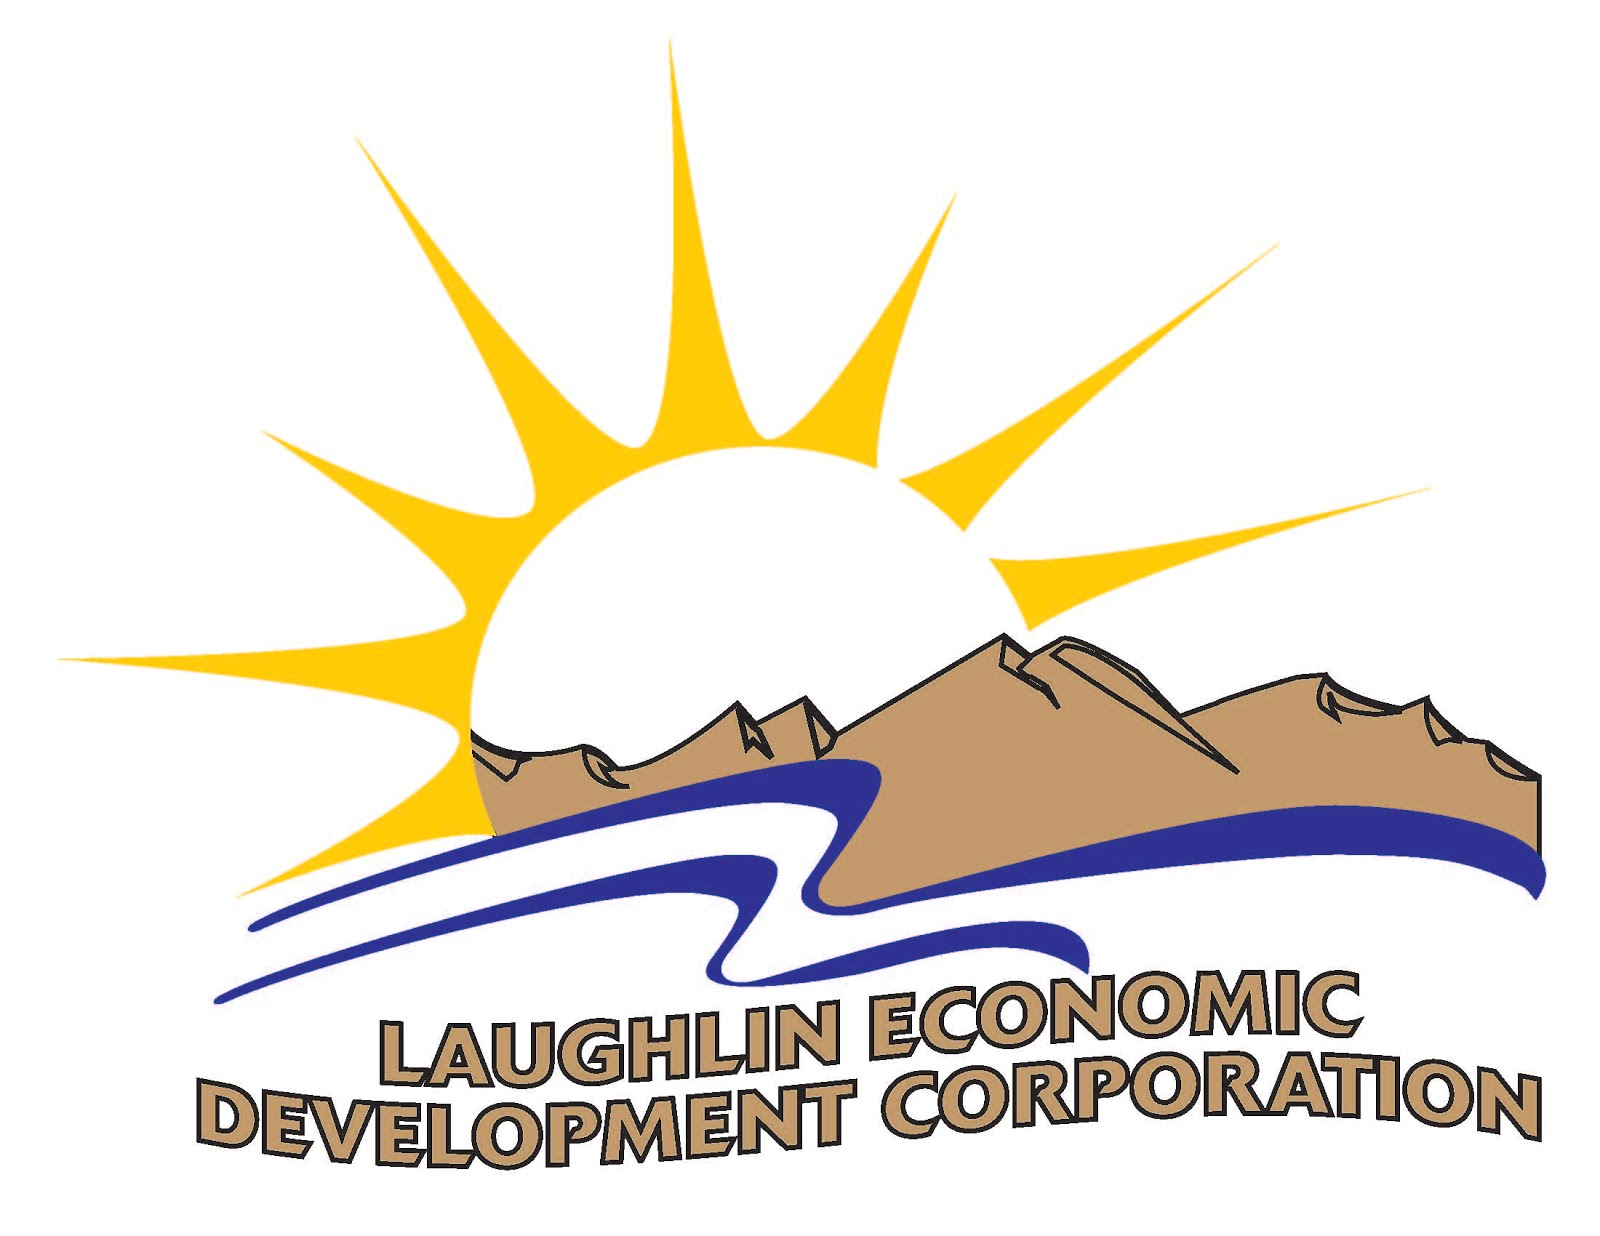 Laughlin Economic Development Corporation